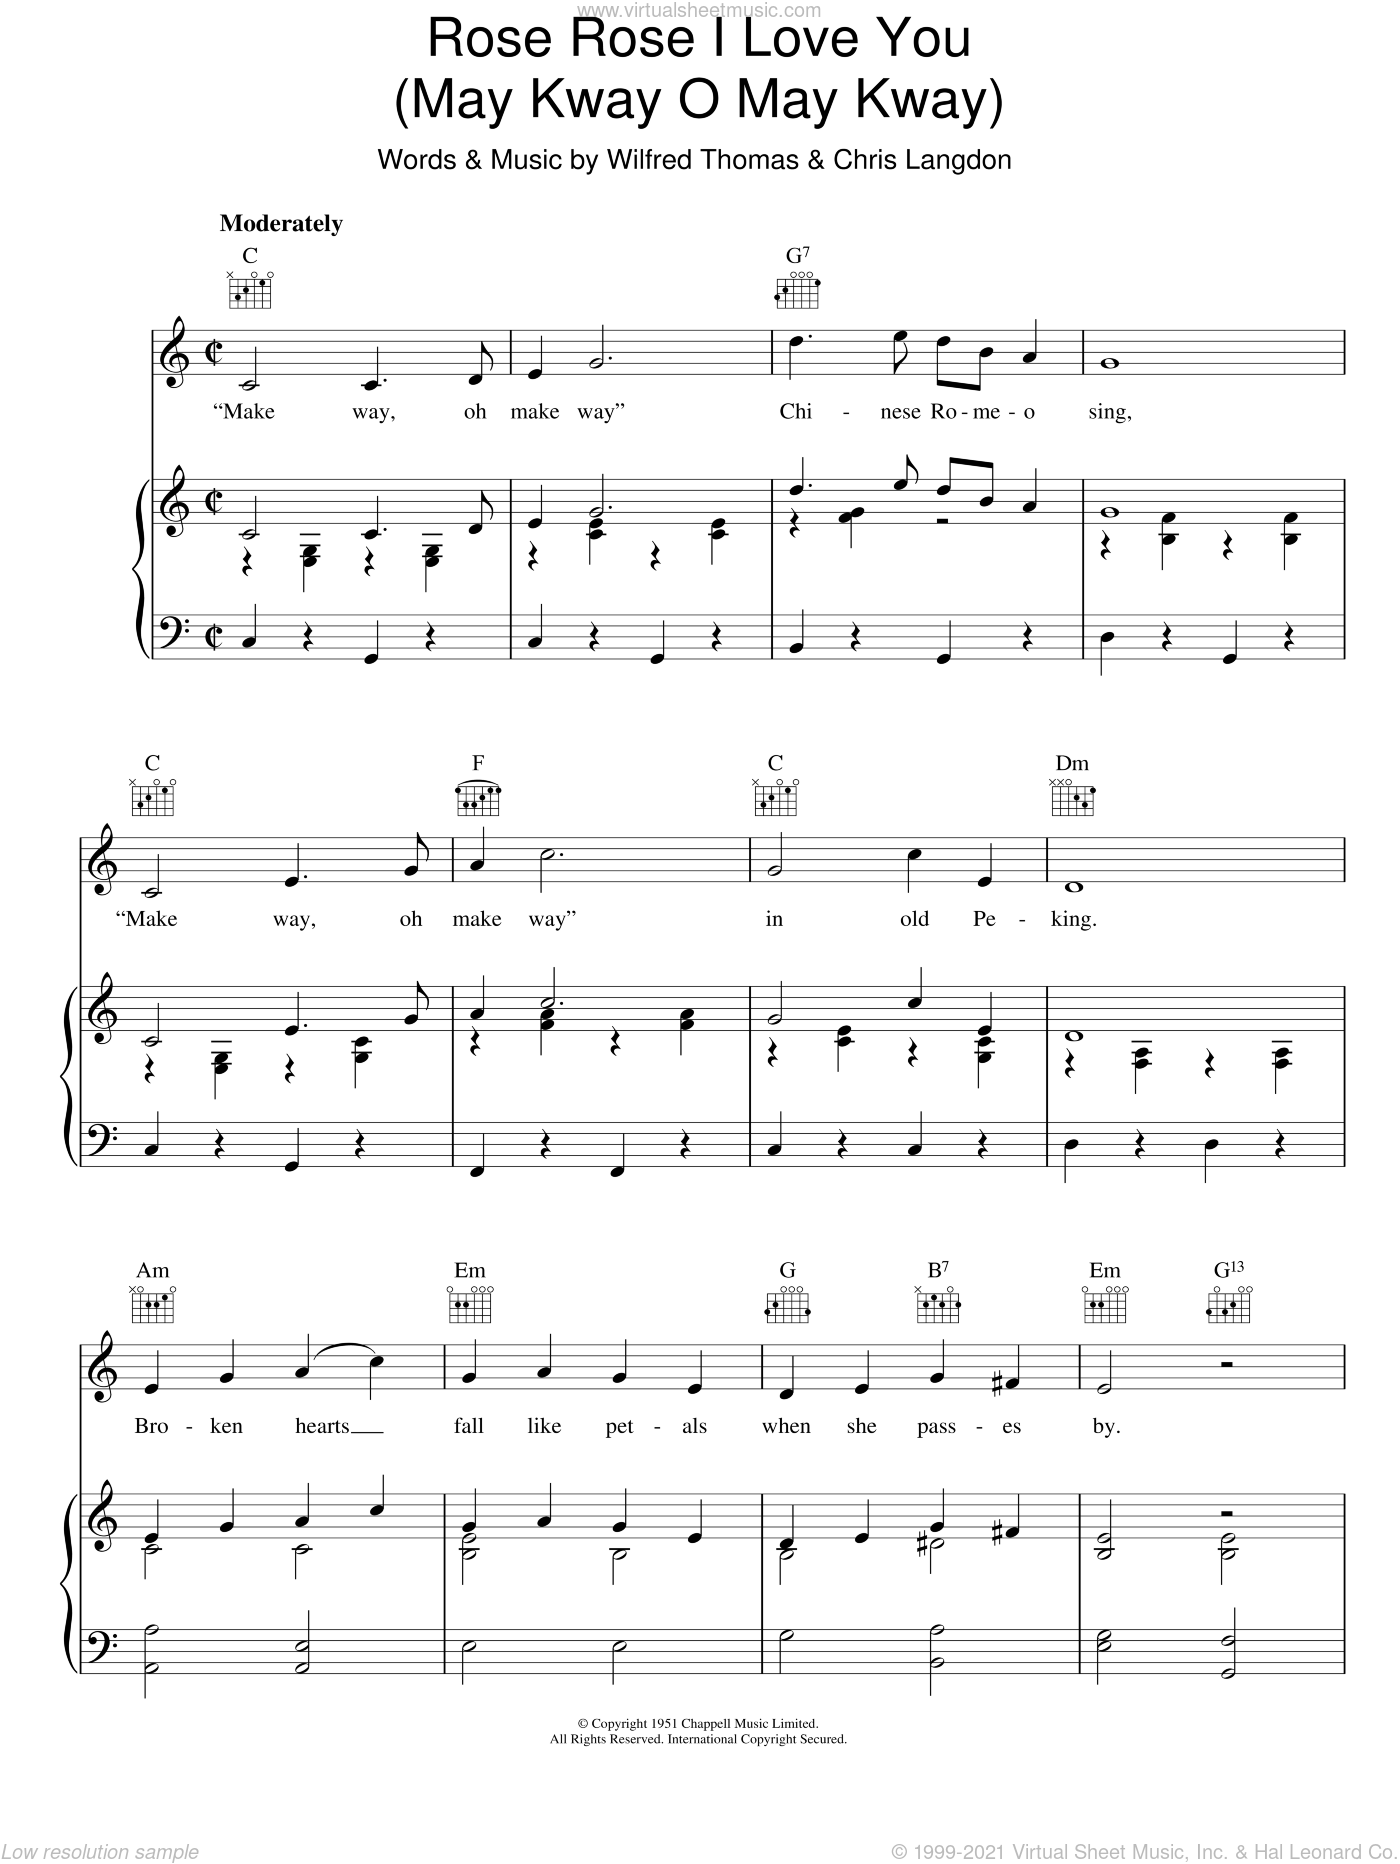 Rose Rose I Love You (May Kway O May Kway) sheet music for voice, piano or guitar by Wilfred Thomas